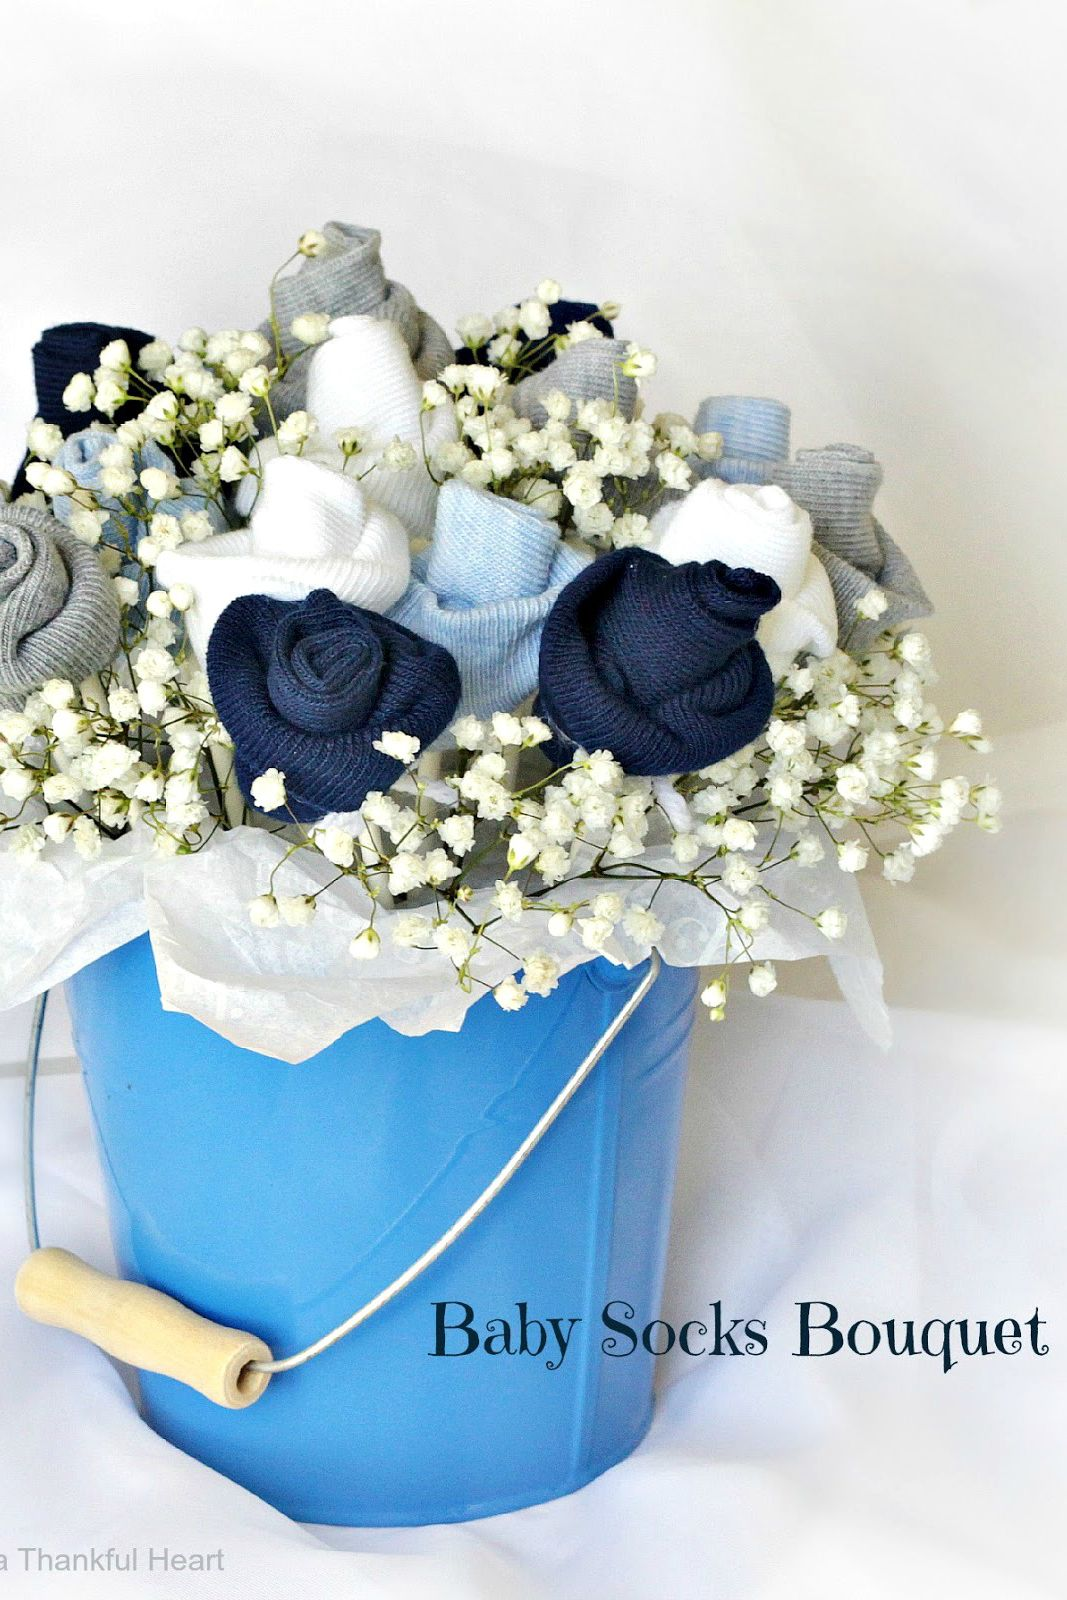 30+ Baby Shower Ideas for Boys and Girls - Baby Shower Food and ...